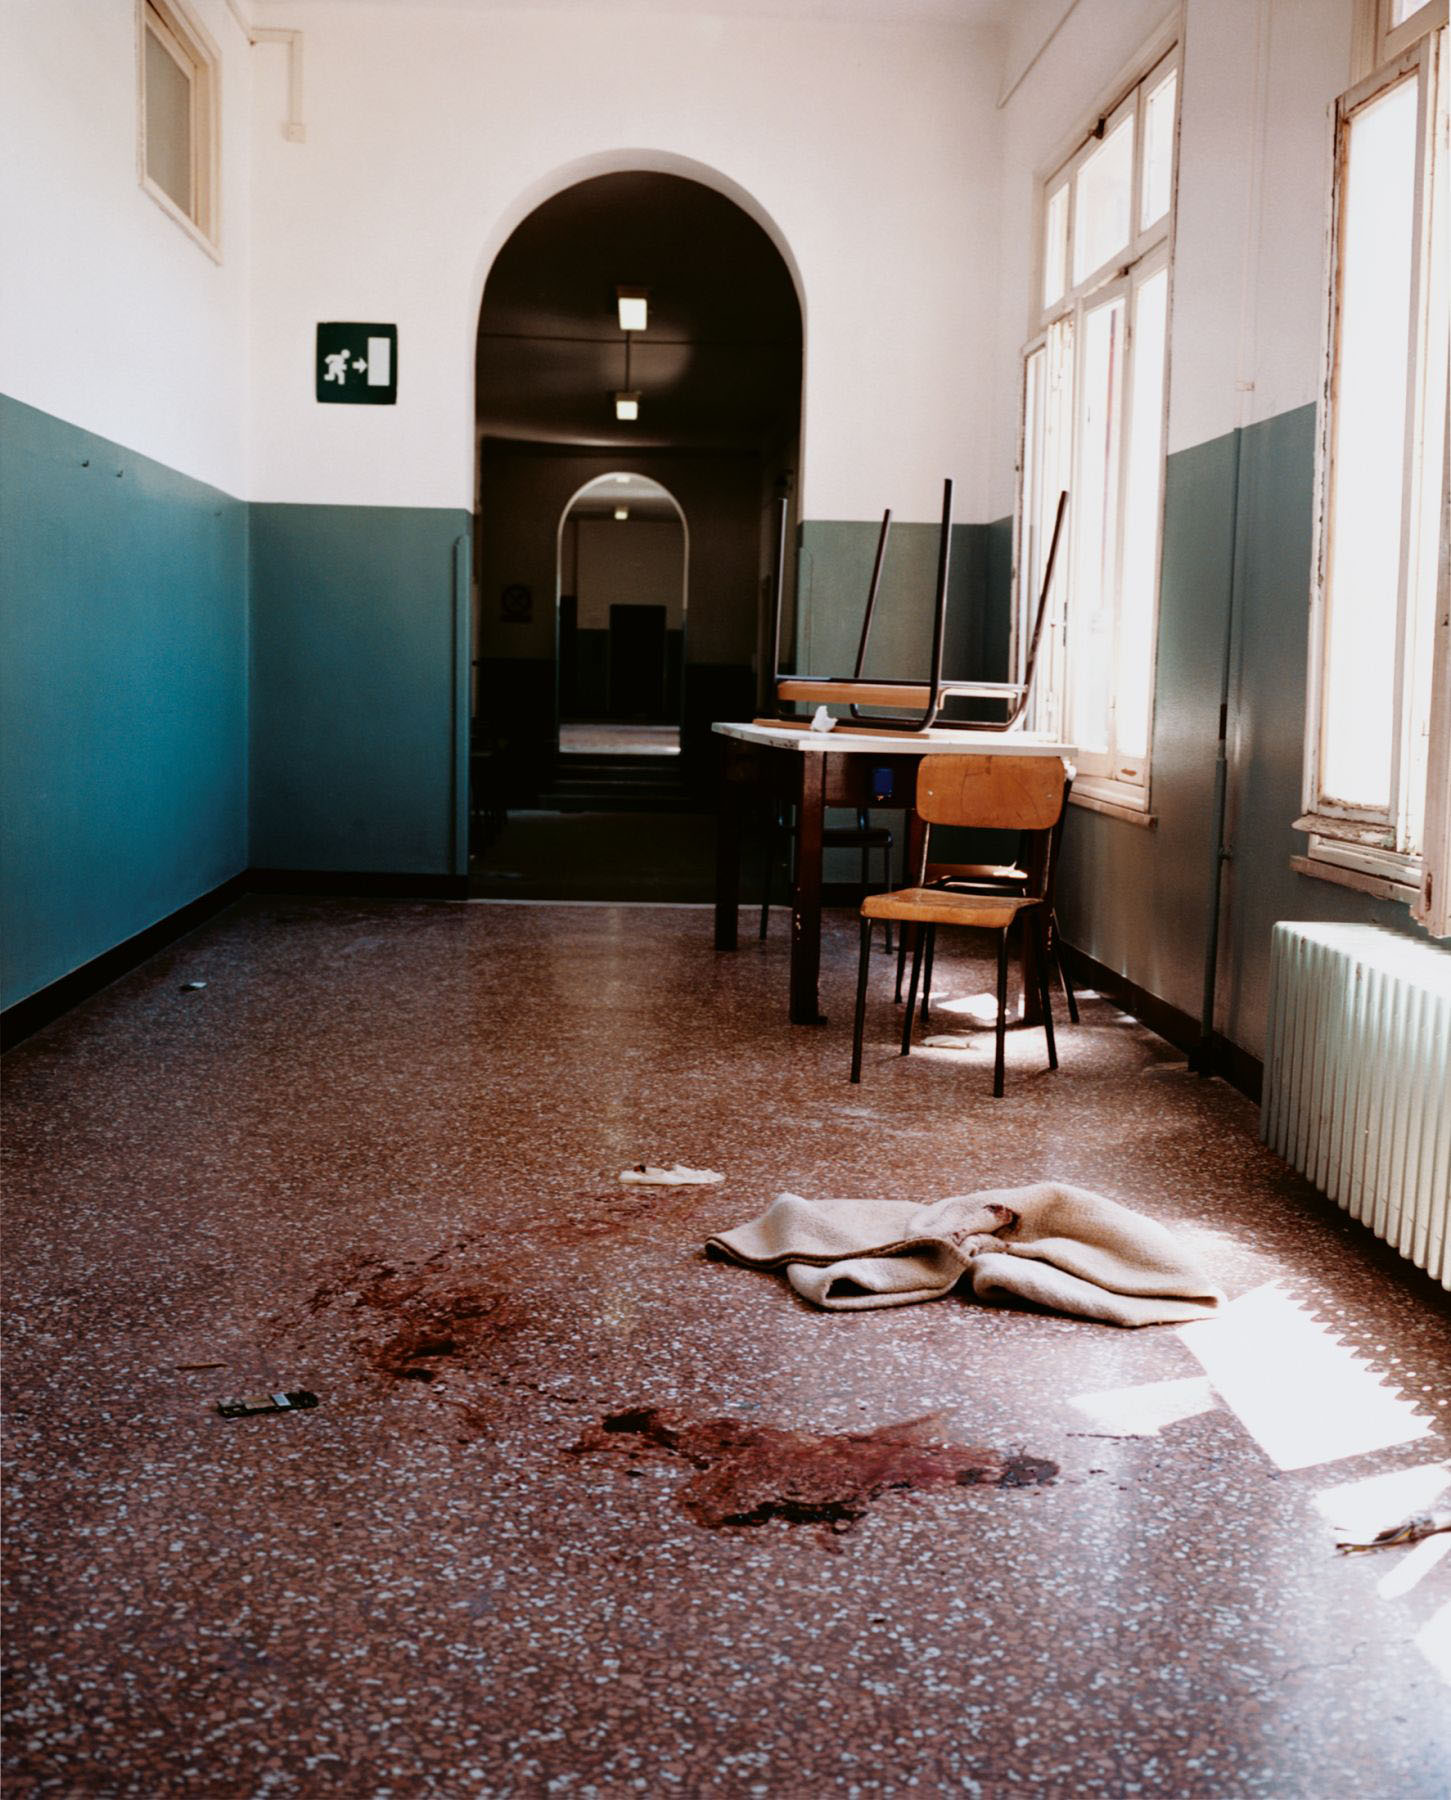 The fifth floor of the Armando Diaz School after a police raid, Genoa, 21 July 2001